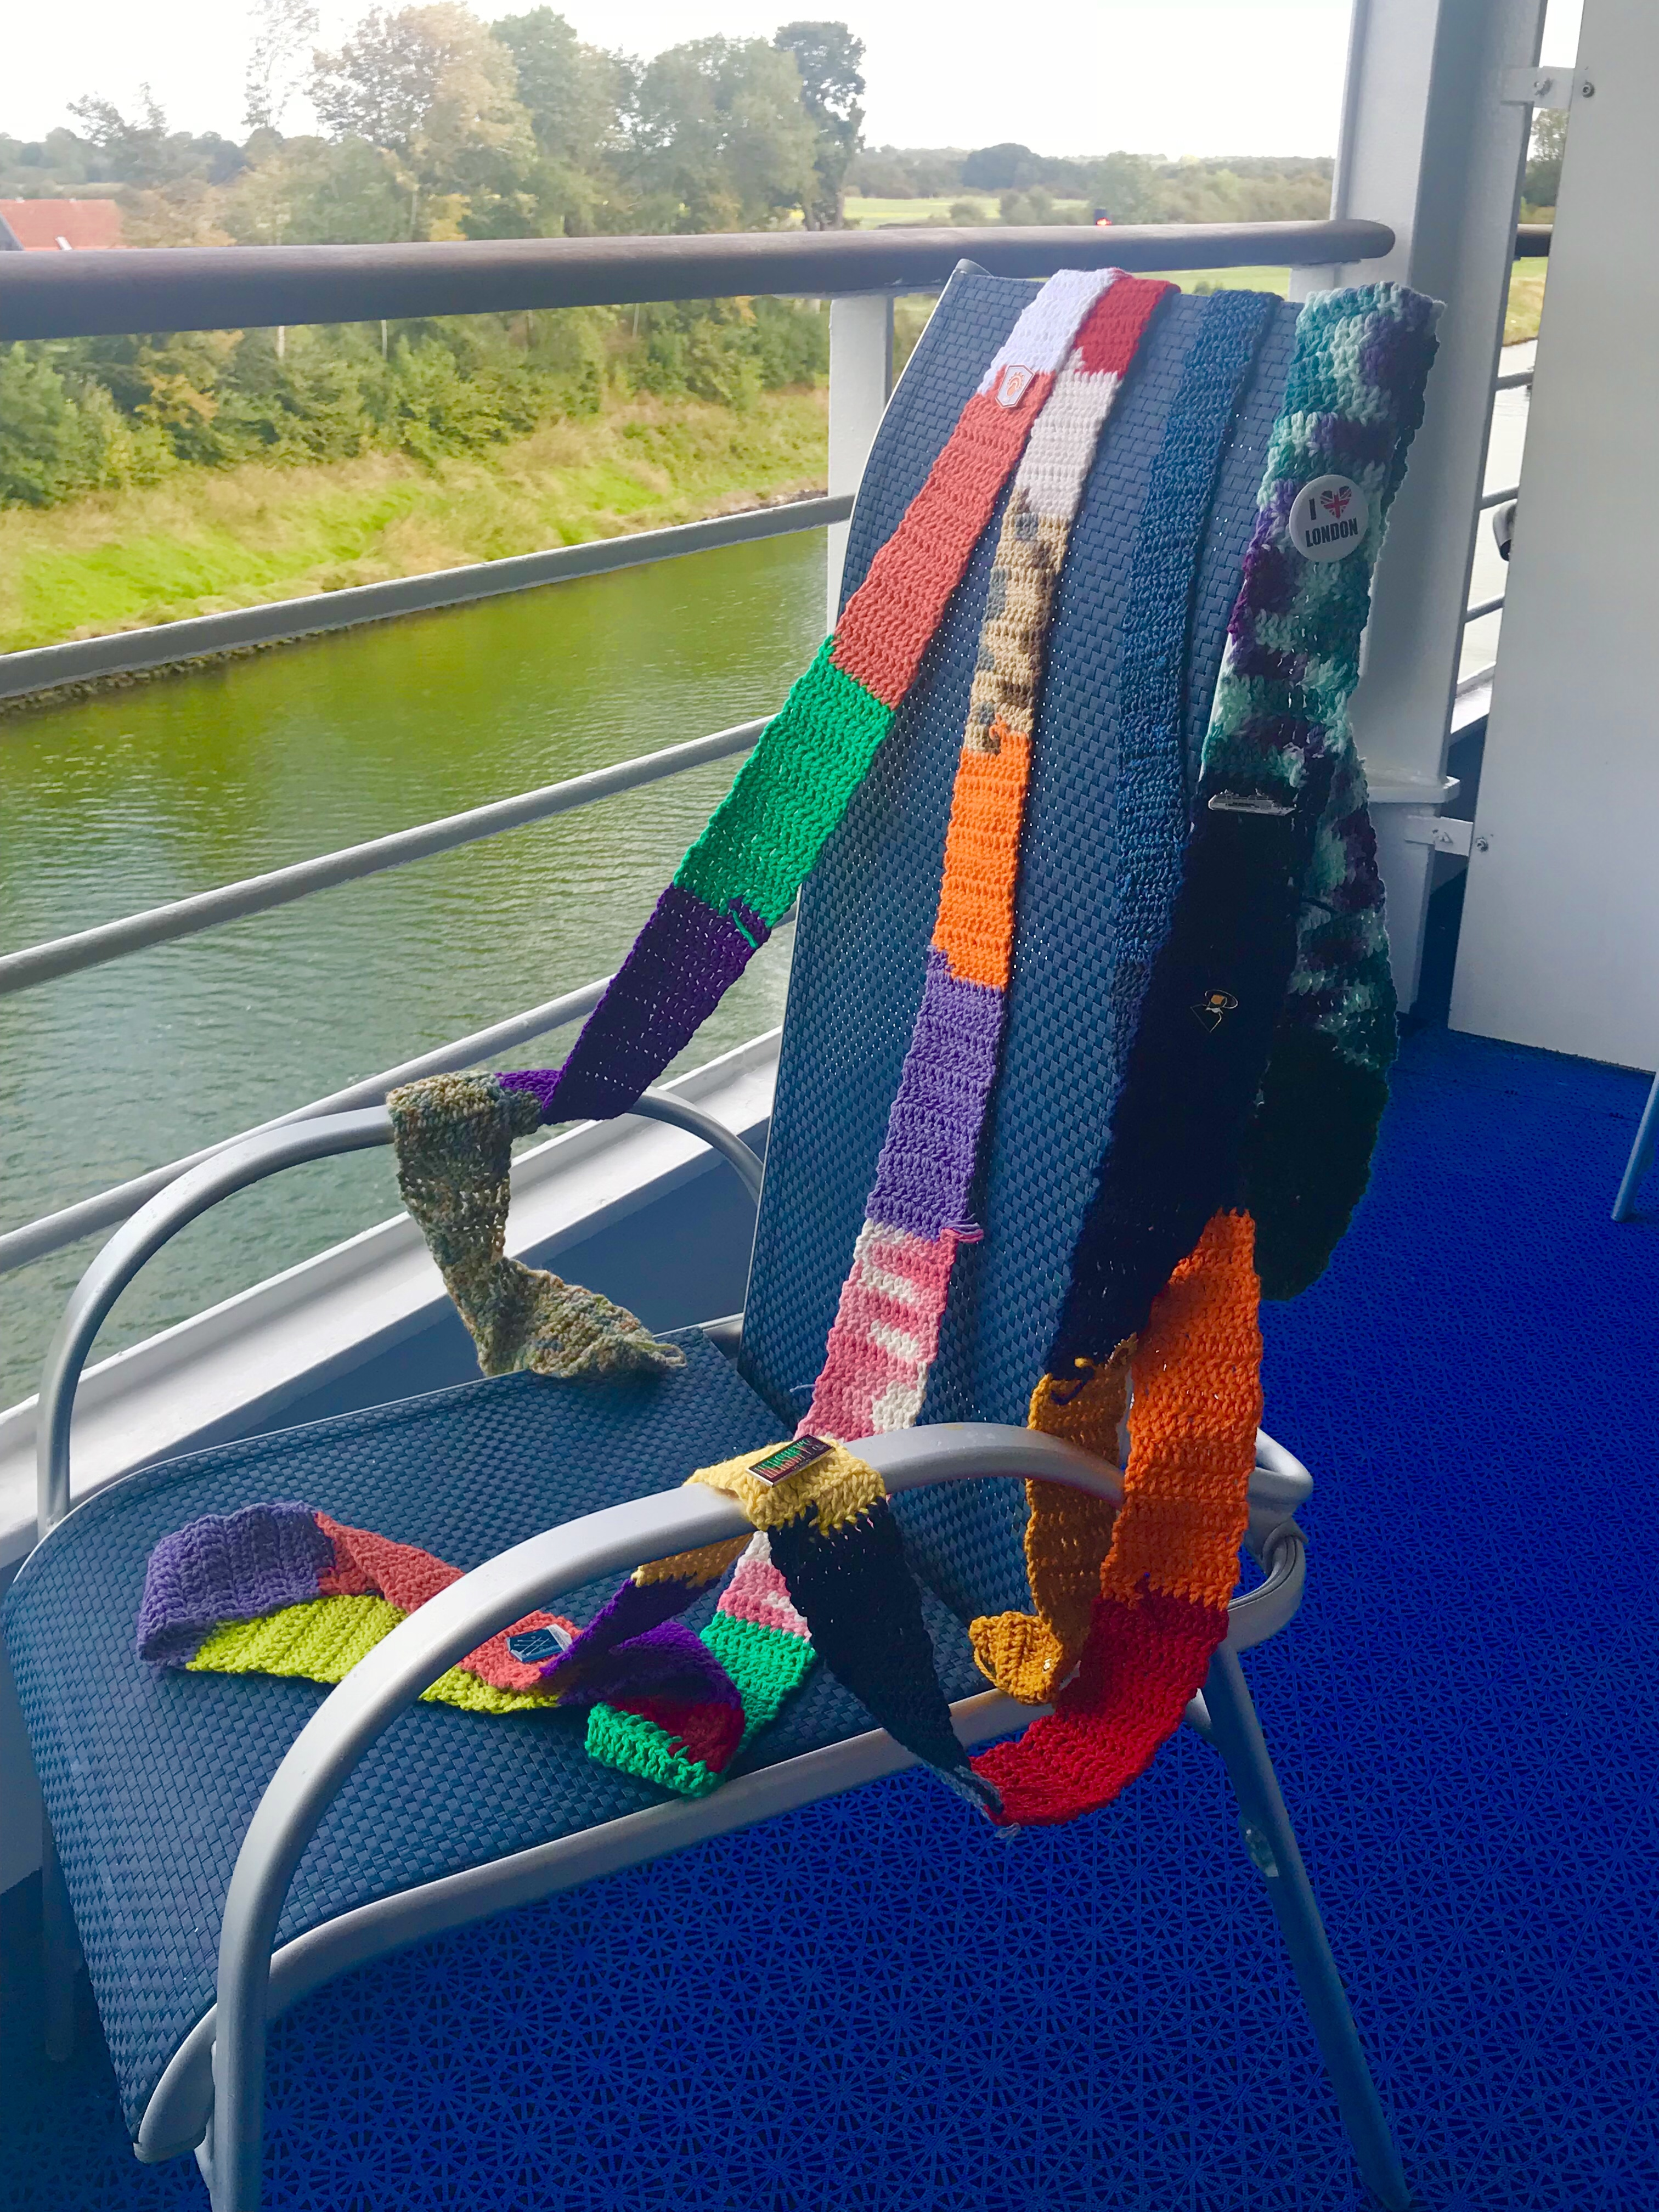 The Ugly Scarf visits the Kiel Canal